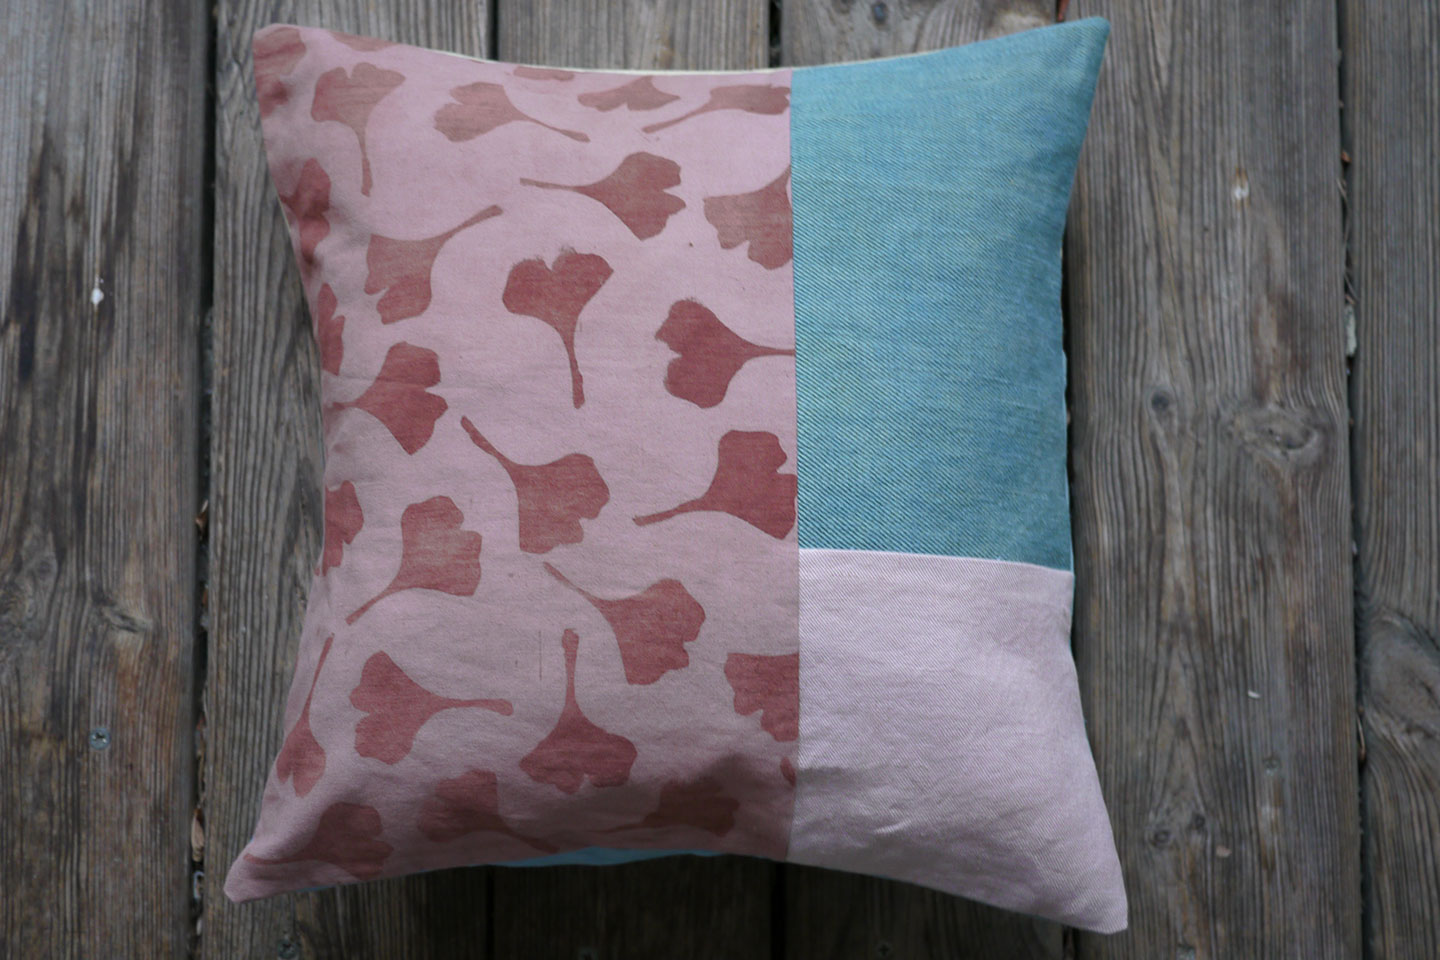 coussin_ode_1440x960